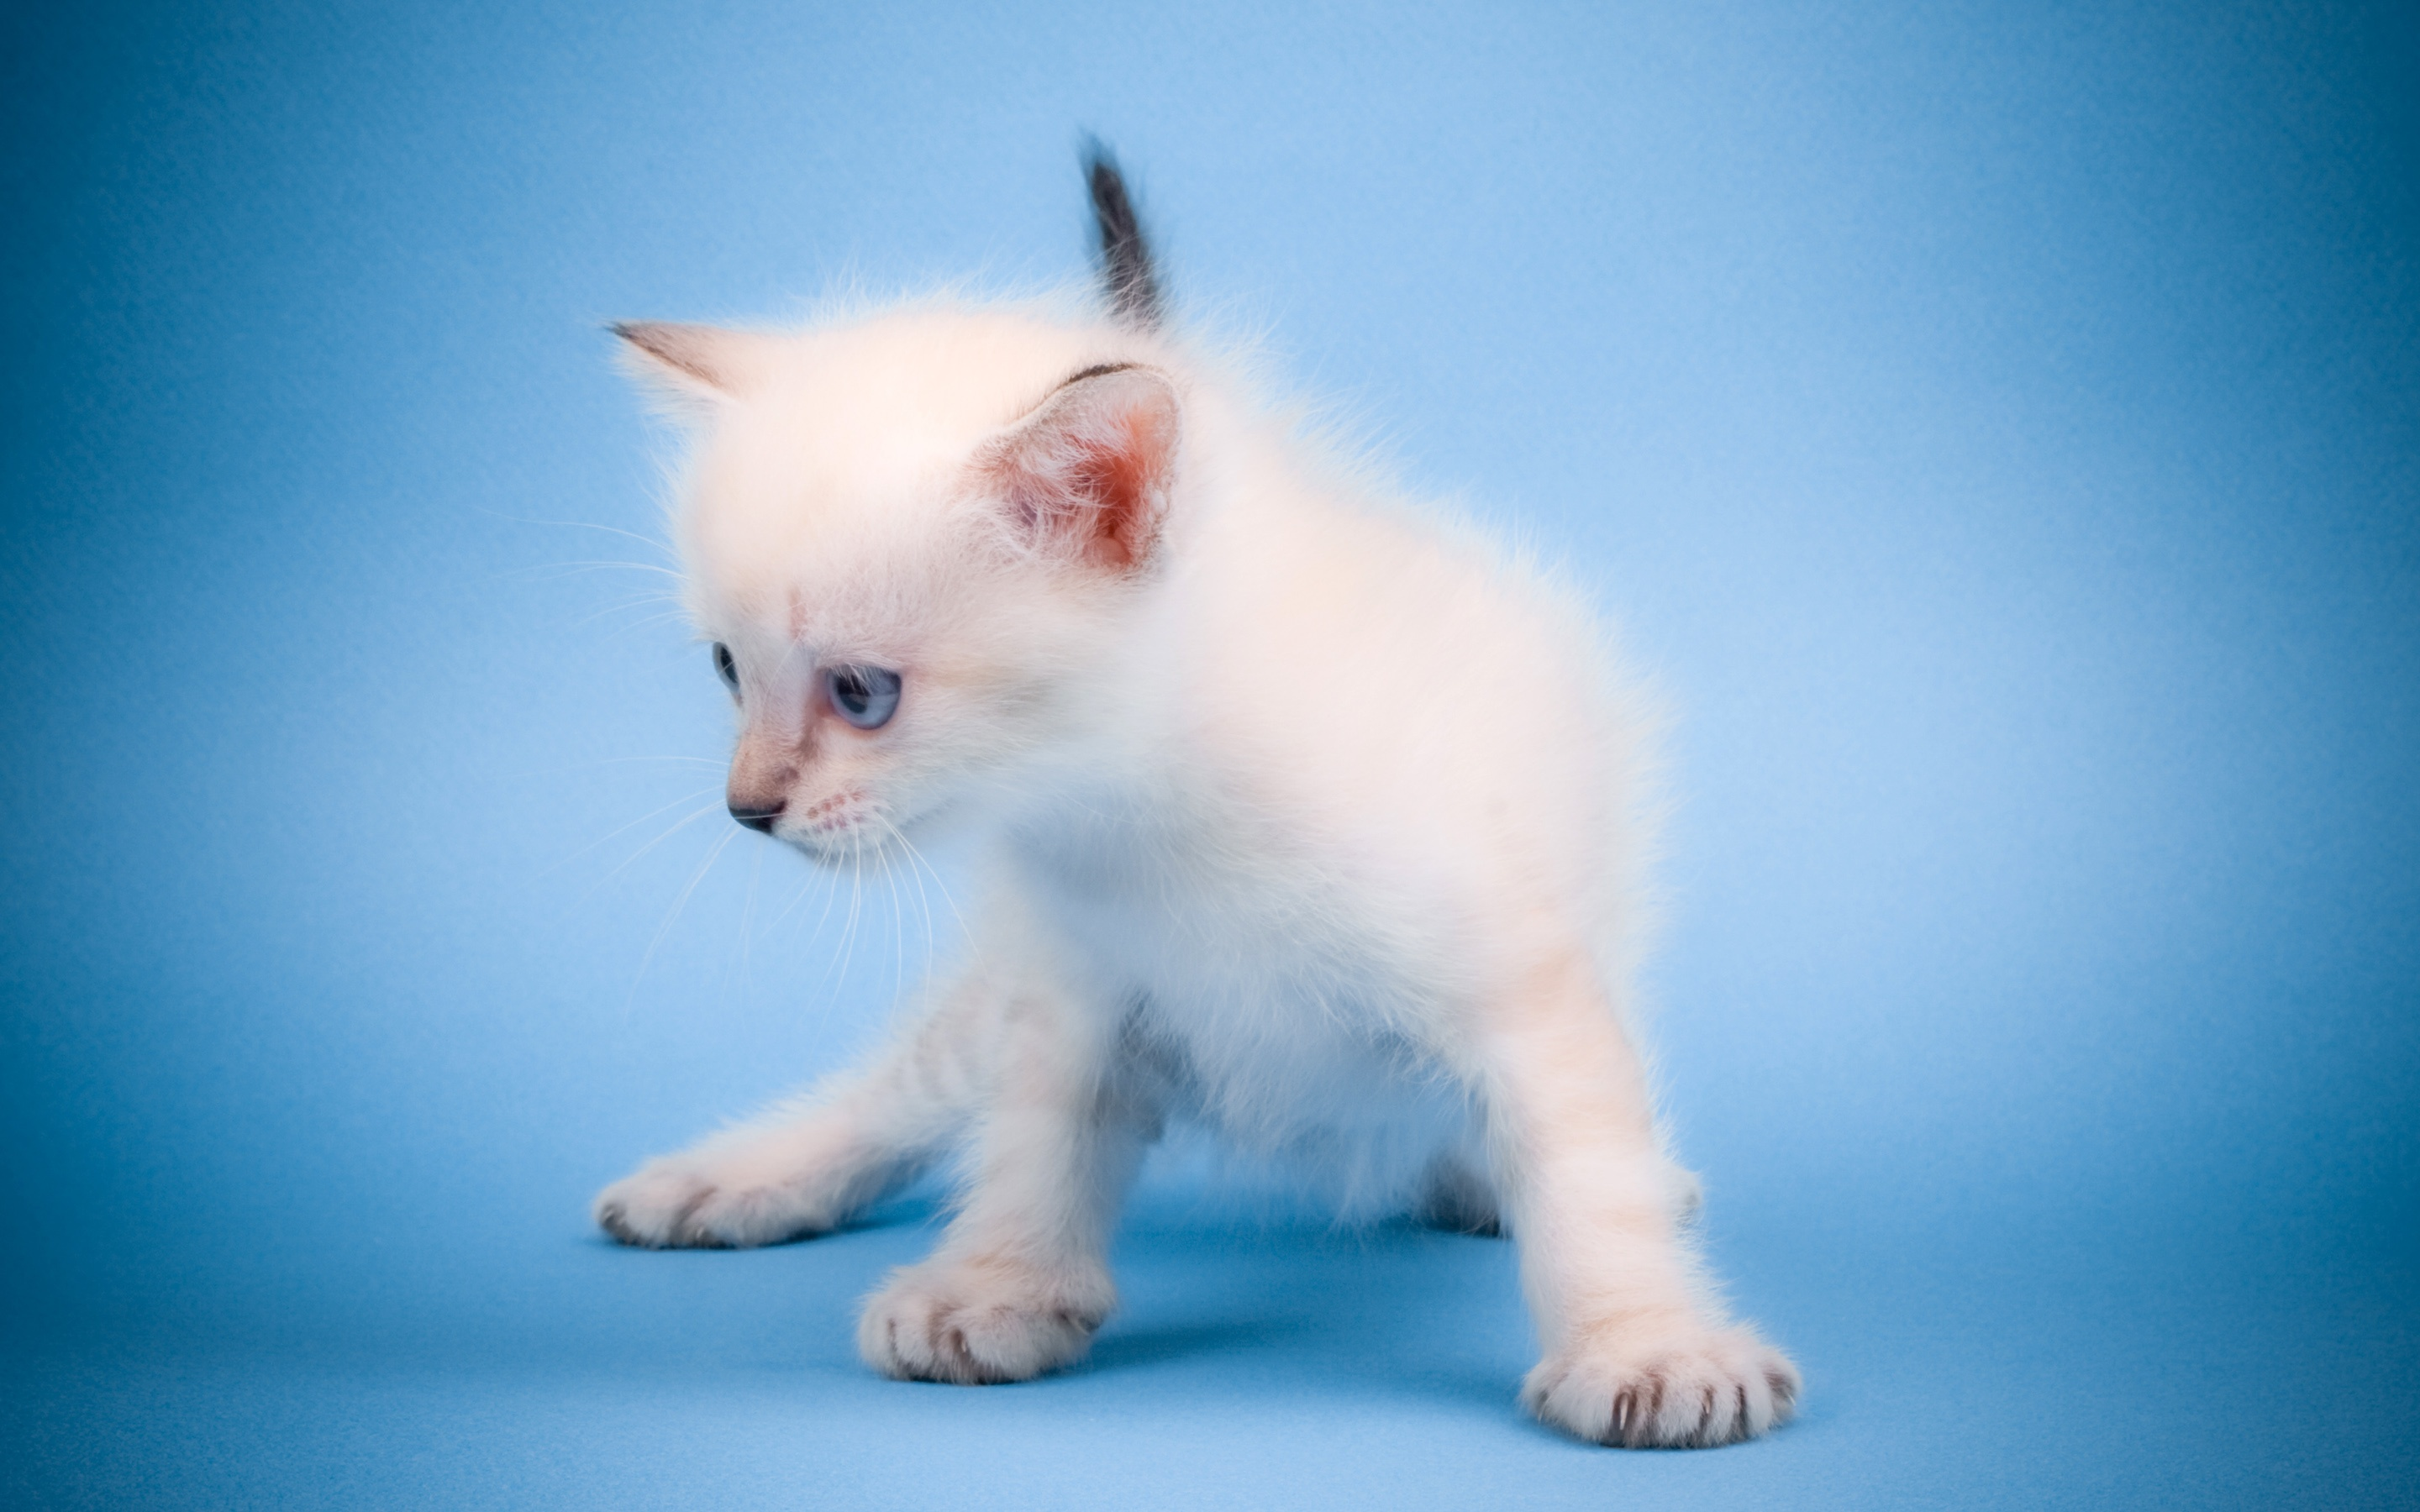 cute kitty wallpaper cats animals wallpapers for free download